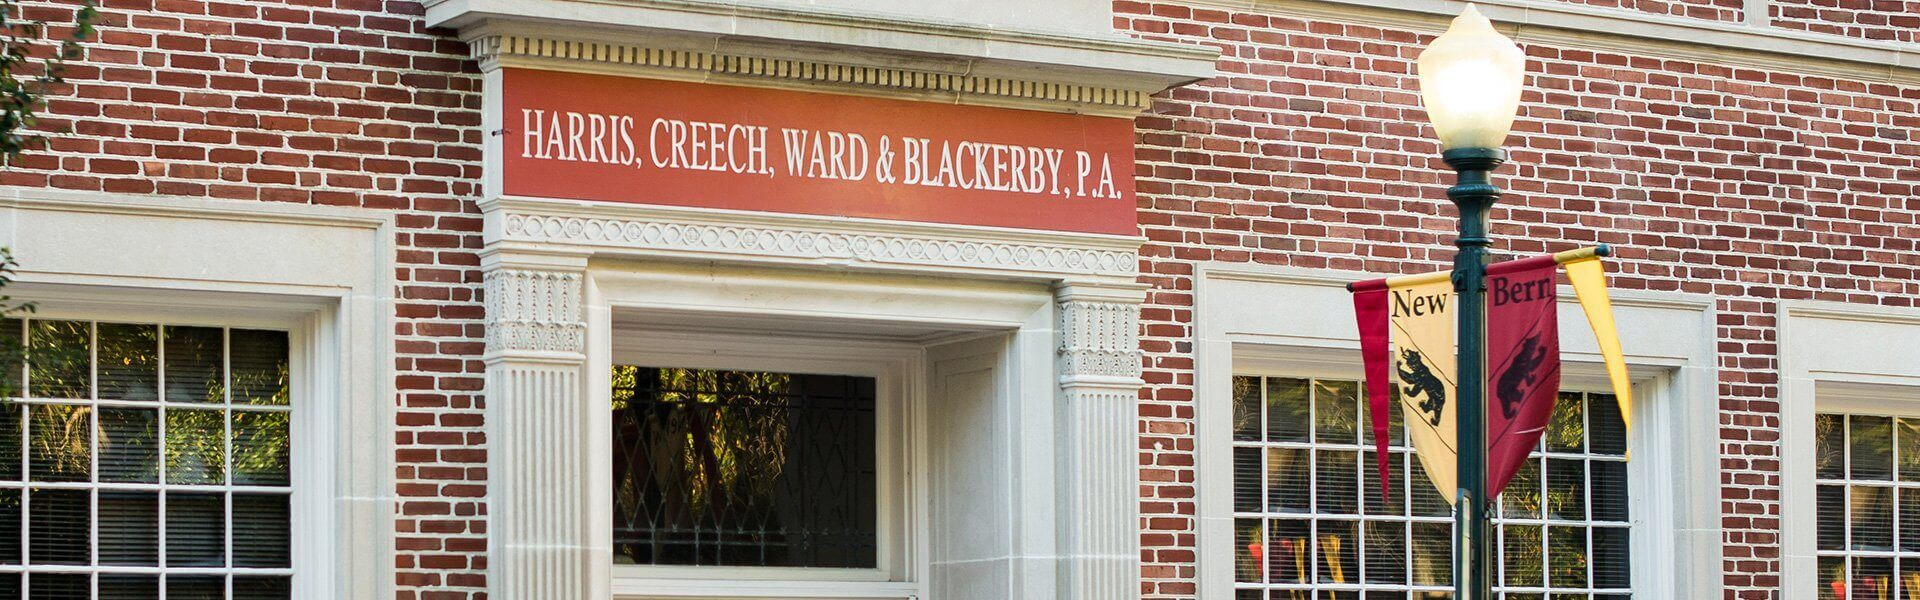 Harris, Creech, Ward, and Blackerby Law Firm